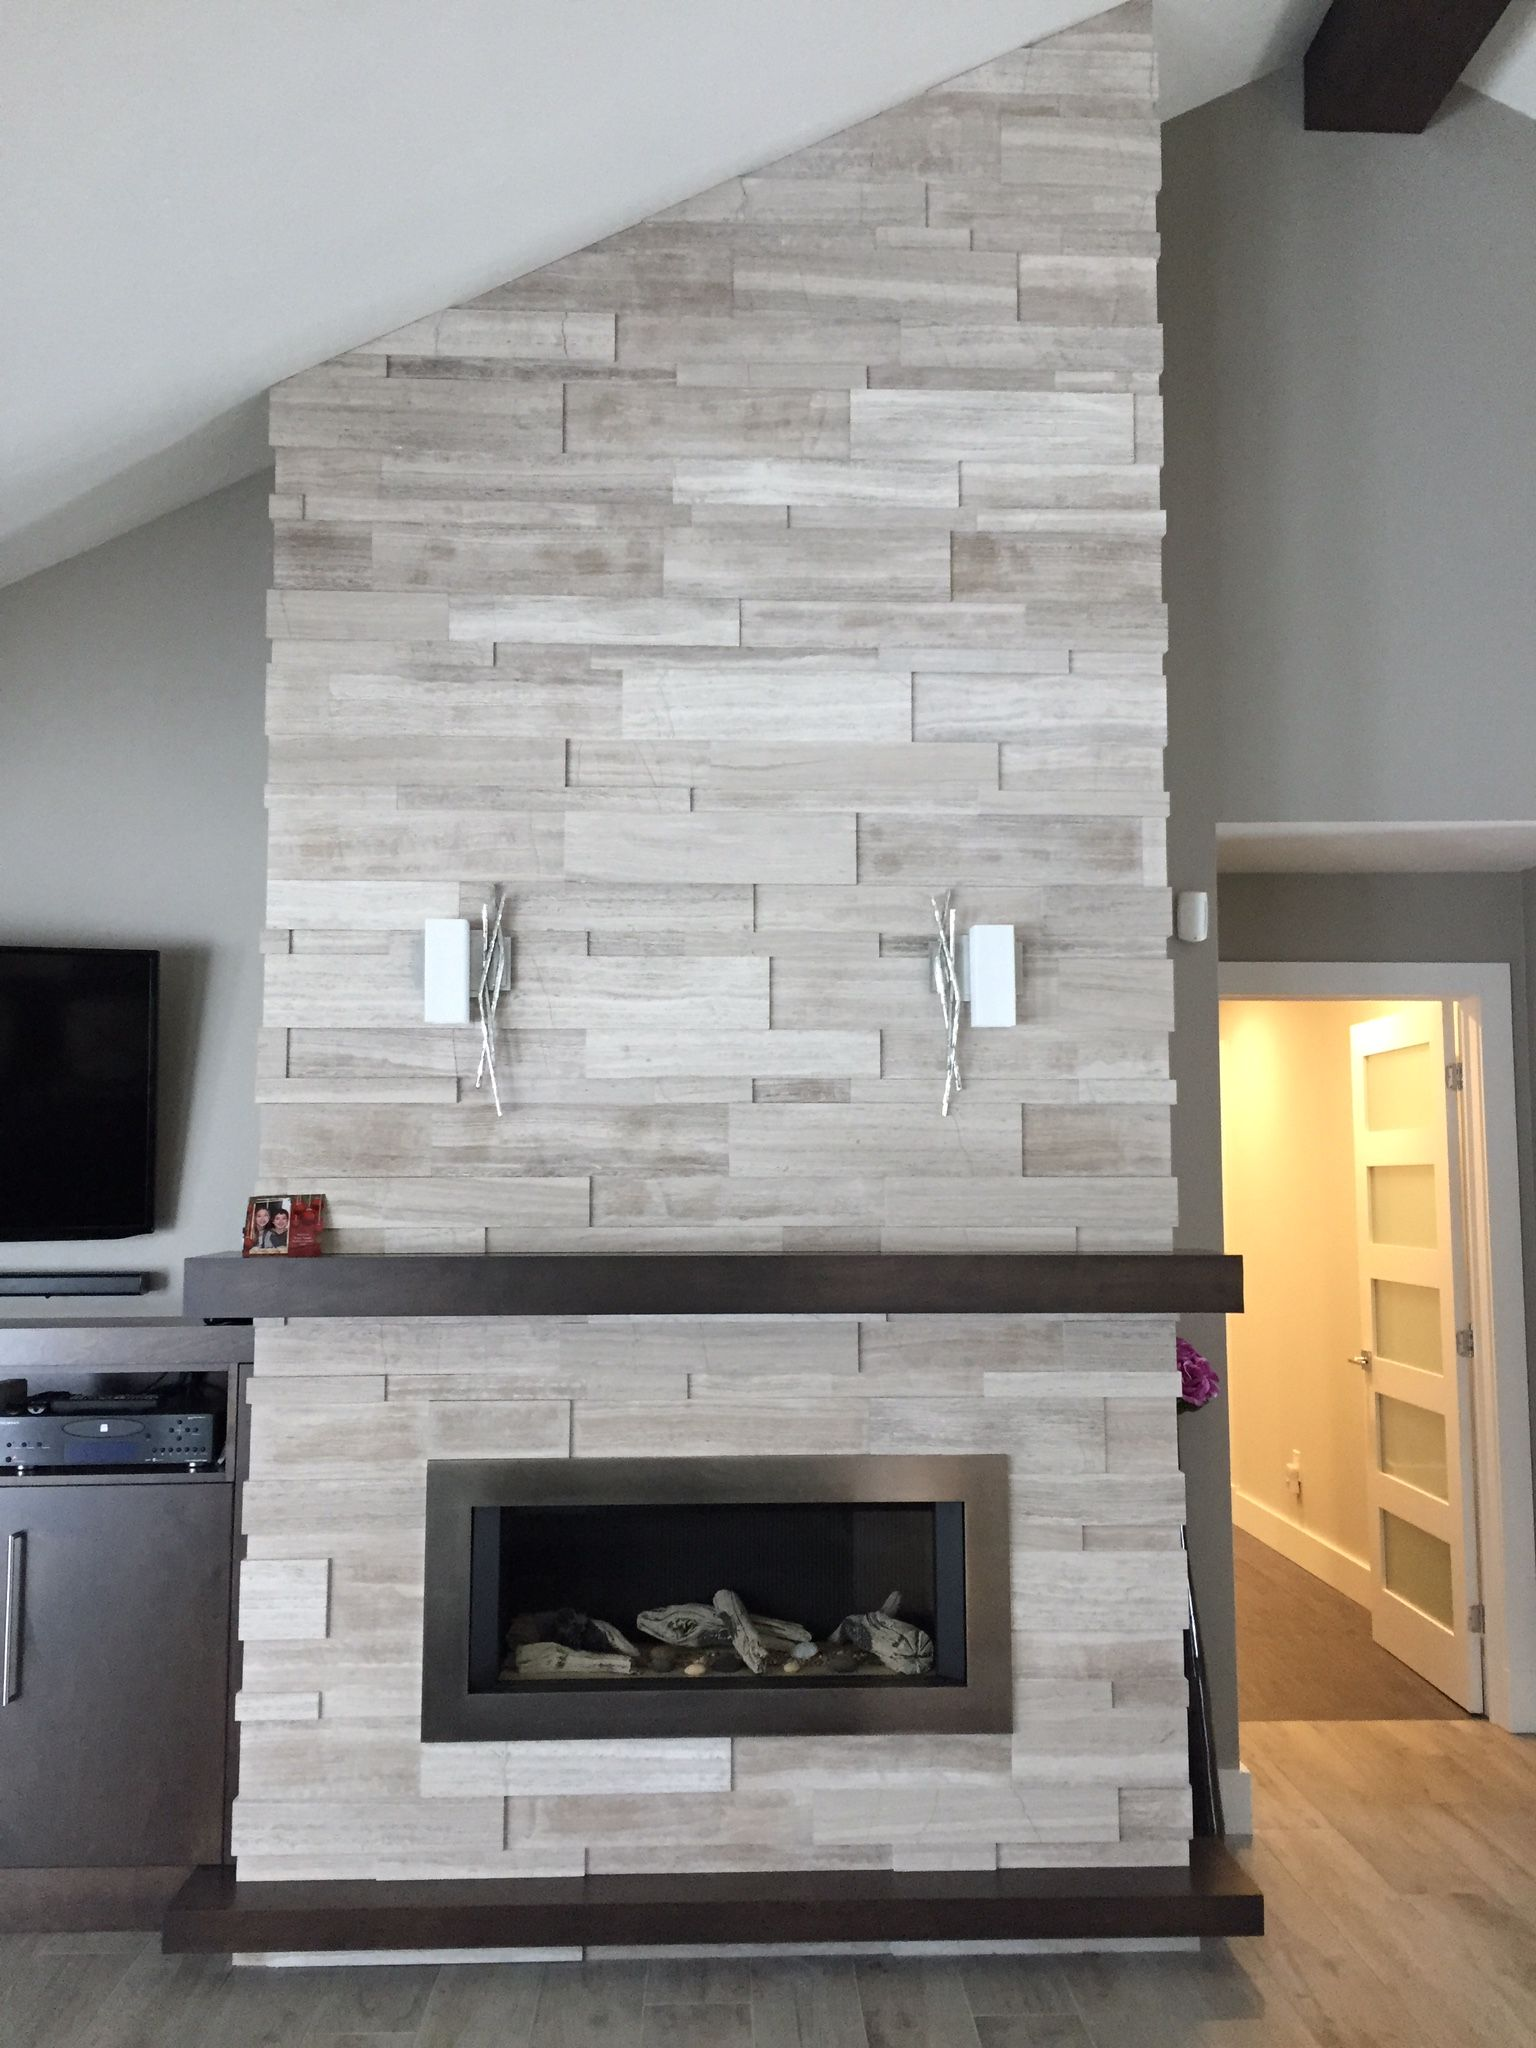 New Fireplace Install By Dominion Tile Ft ErthCOVERINGS Large - Dominion ceramic tile